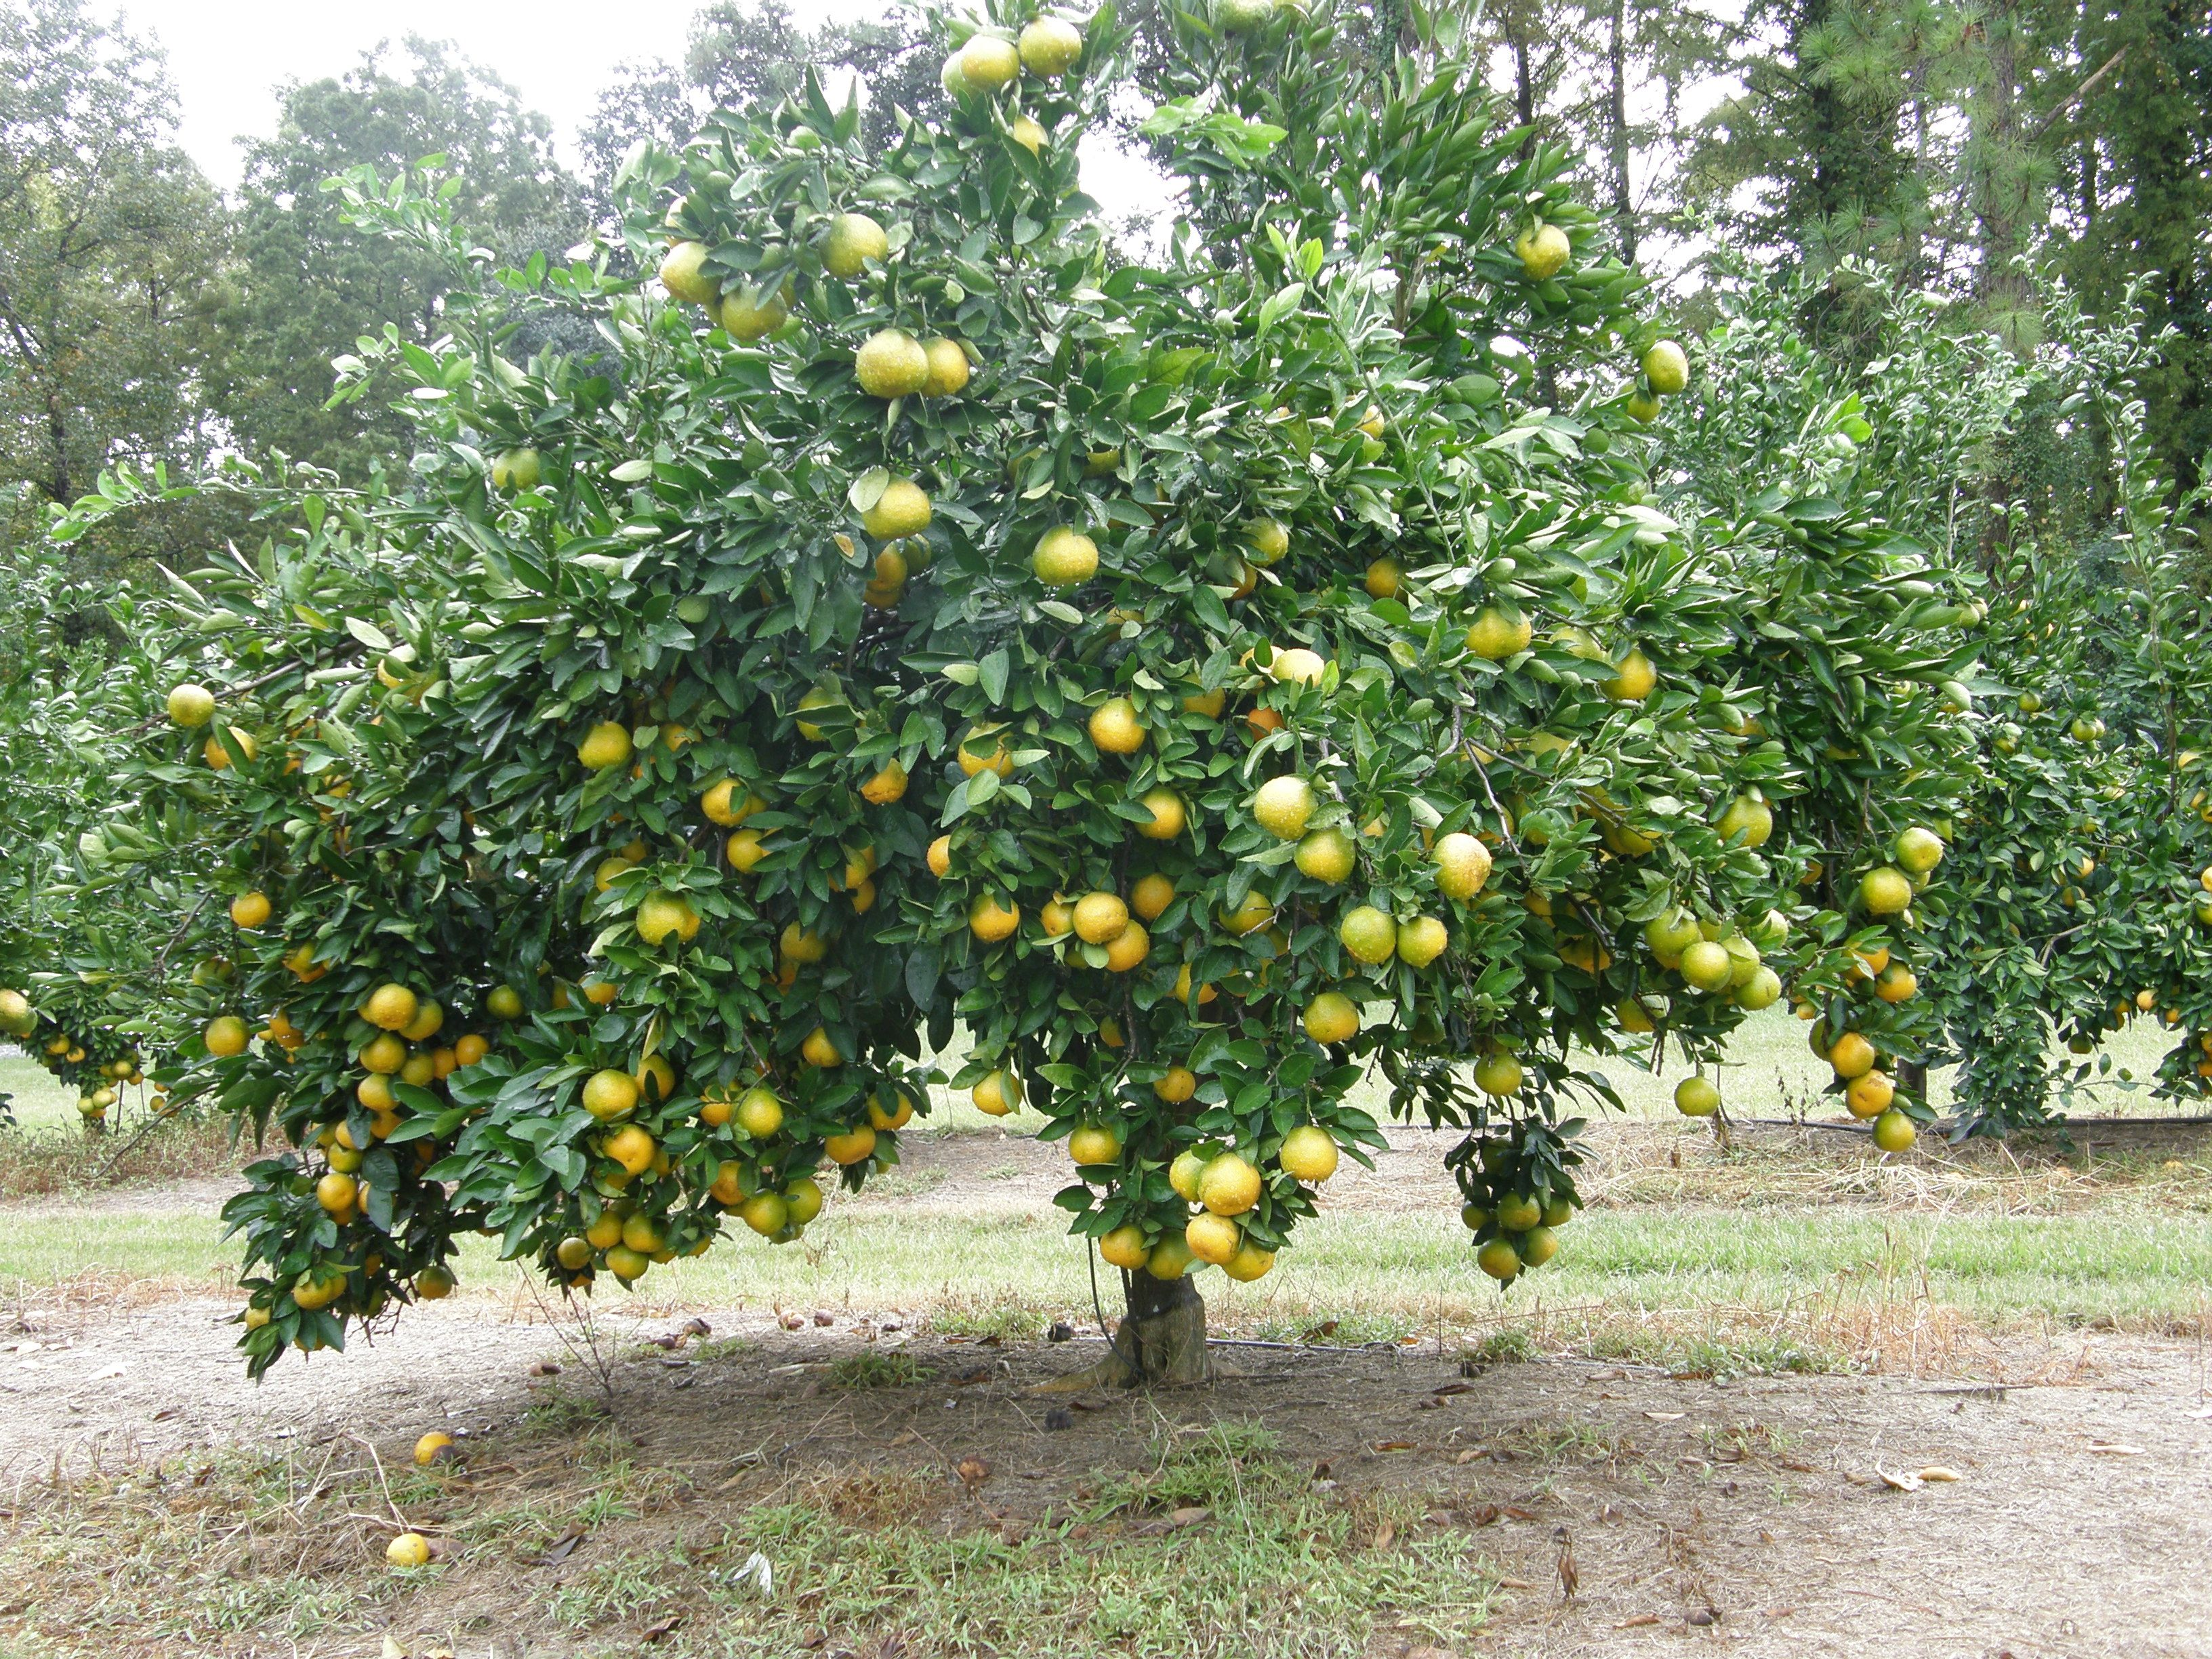 Charming Tree With Fruits Part - 10: Beautiful Well Grown And Shaped Apple Tree.